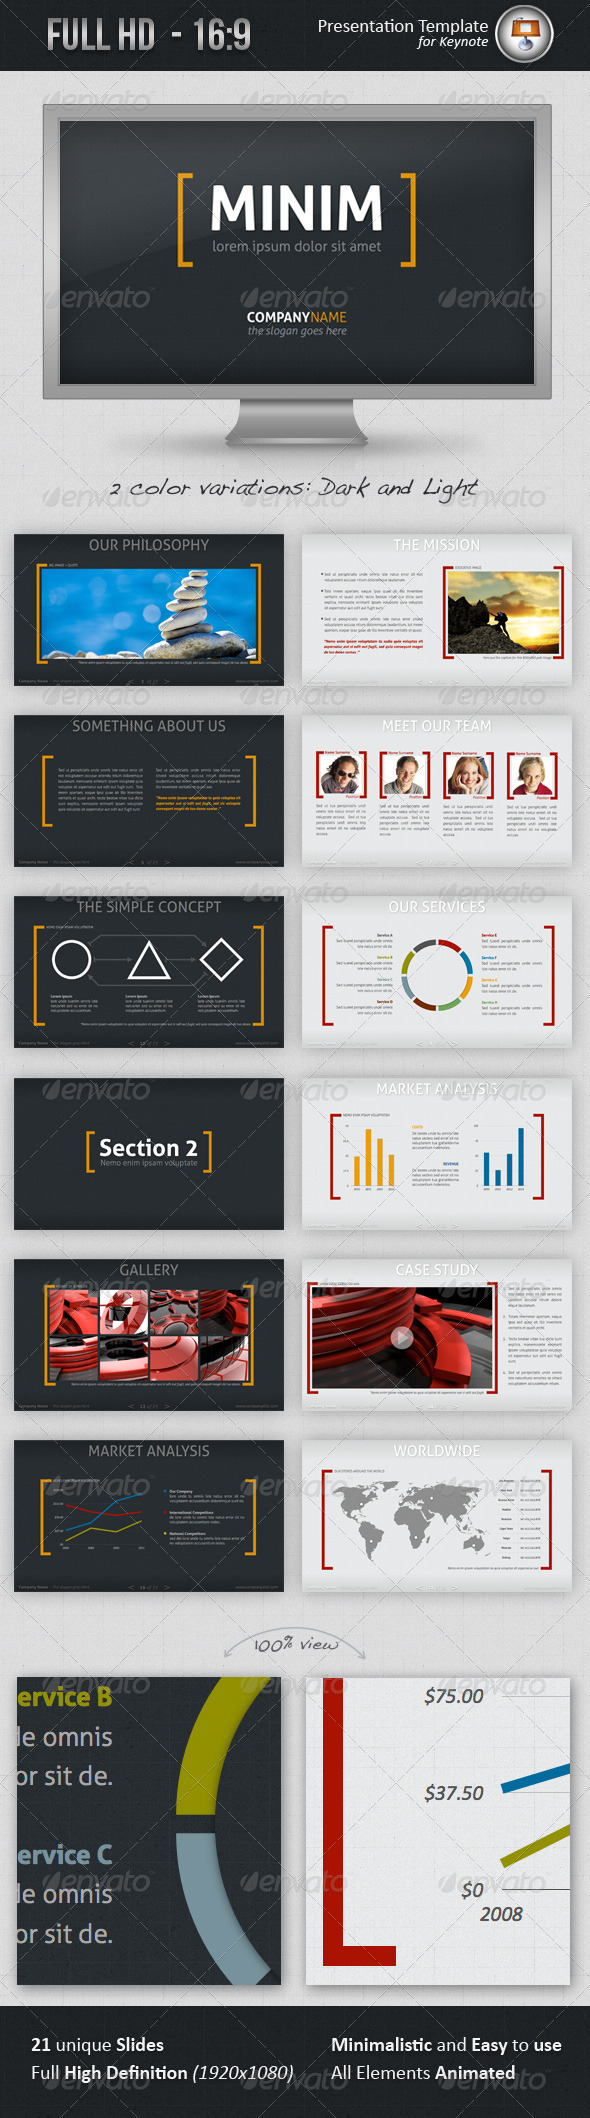 Minim Keynote Template | Keynote, Template and Ppt design